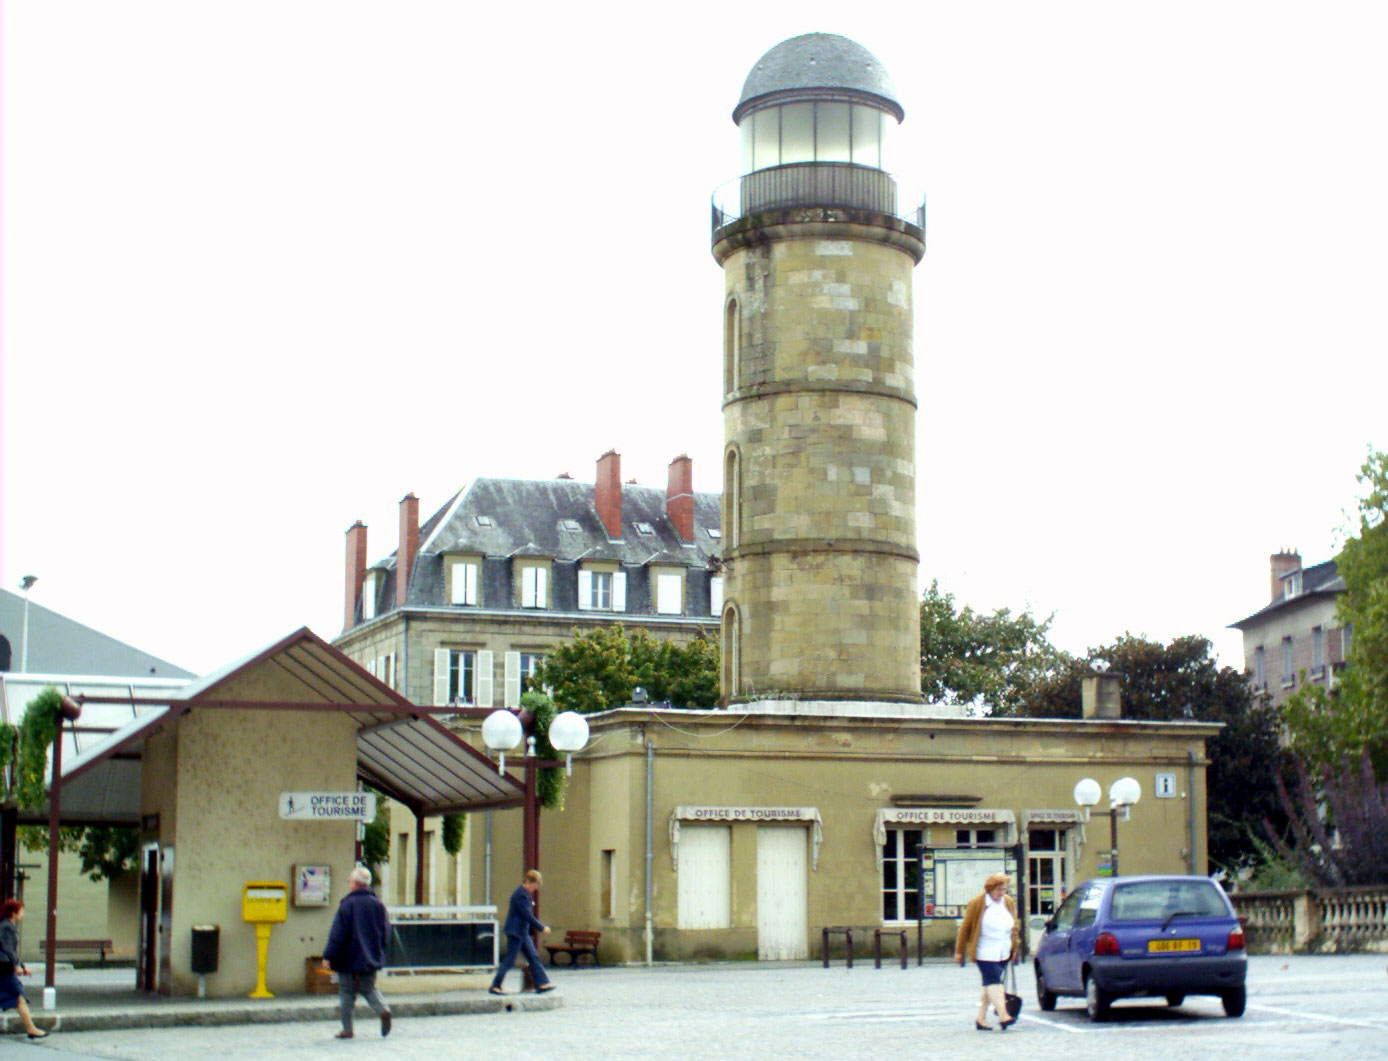 Brive-la-Gaillarde-Visitor-Center